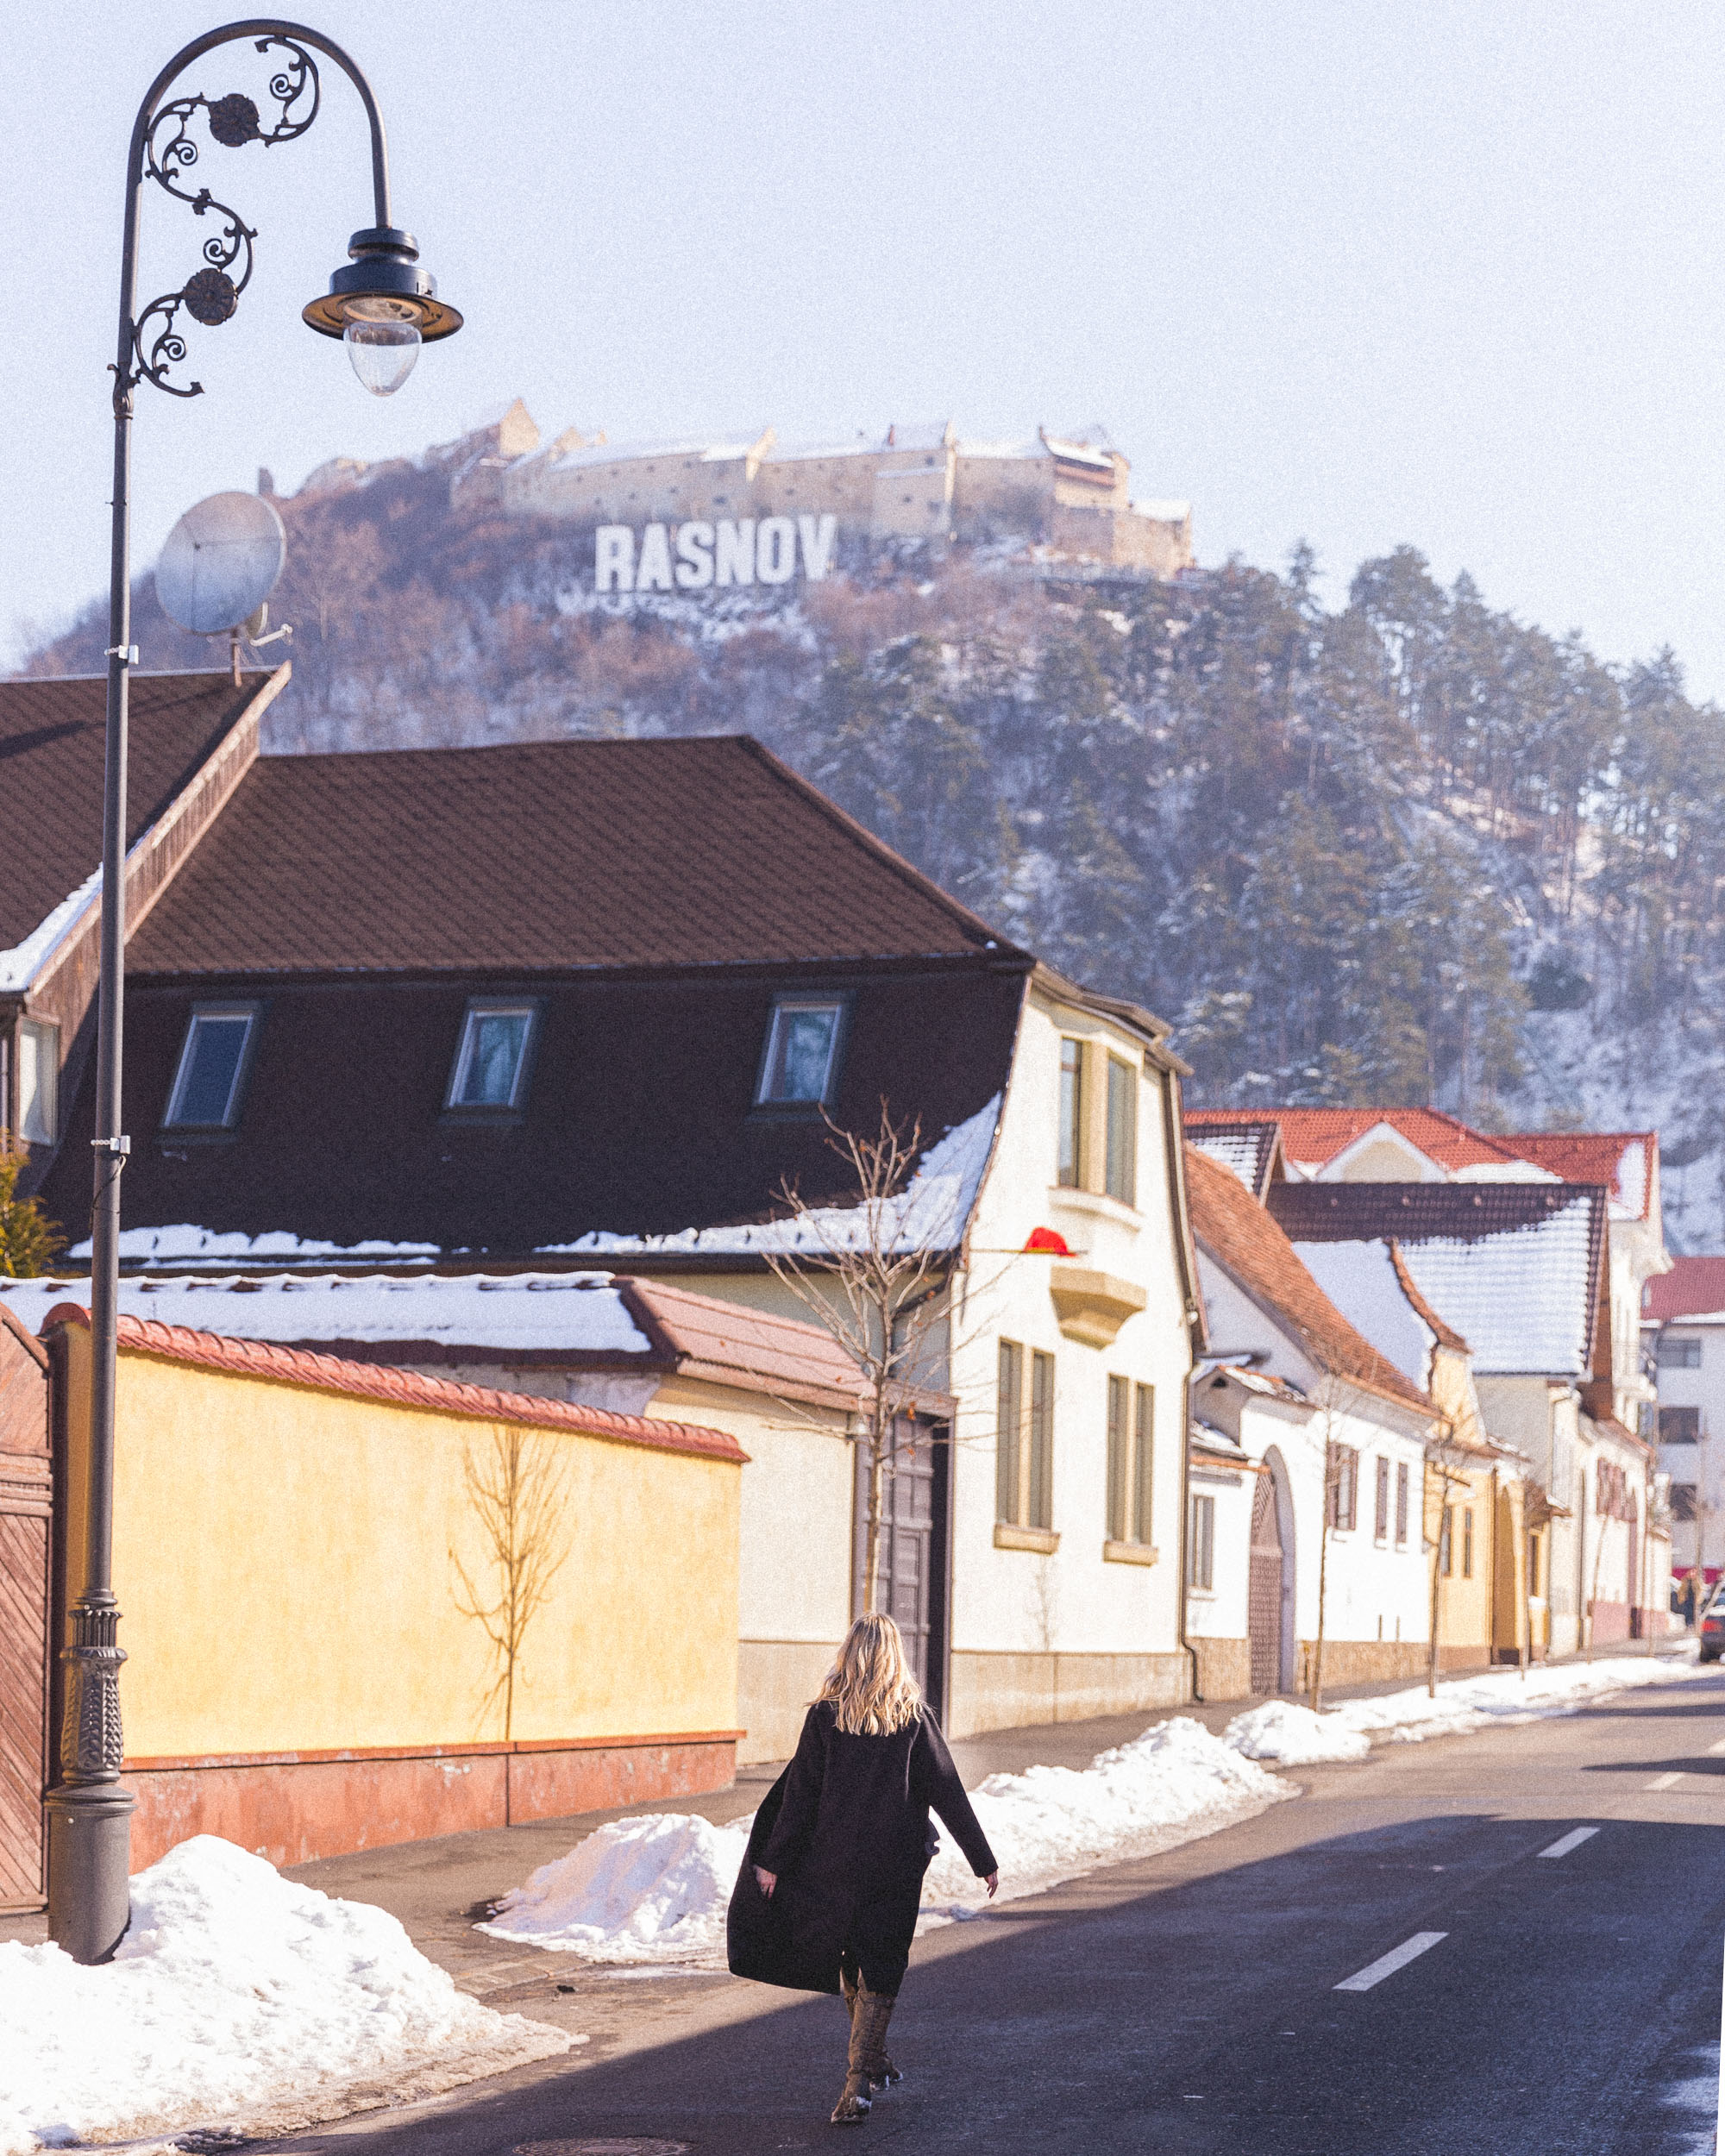 Walking streets of Rasnov Town, a day trip in Transylvania, Romania